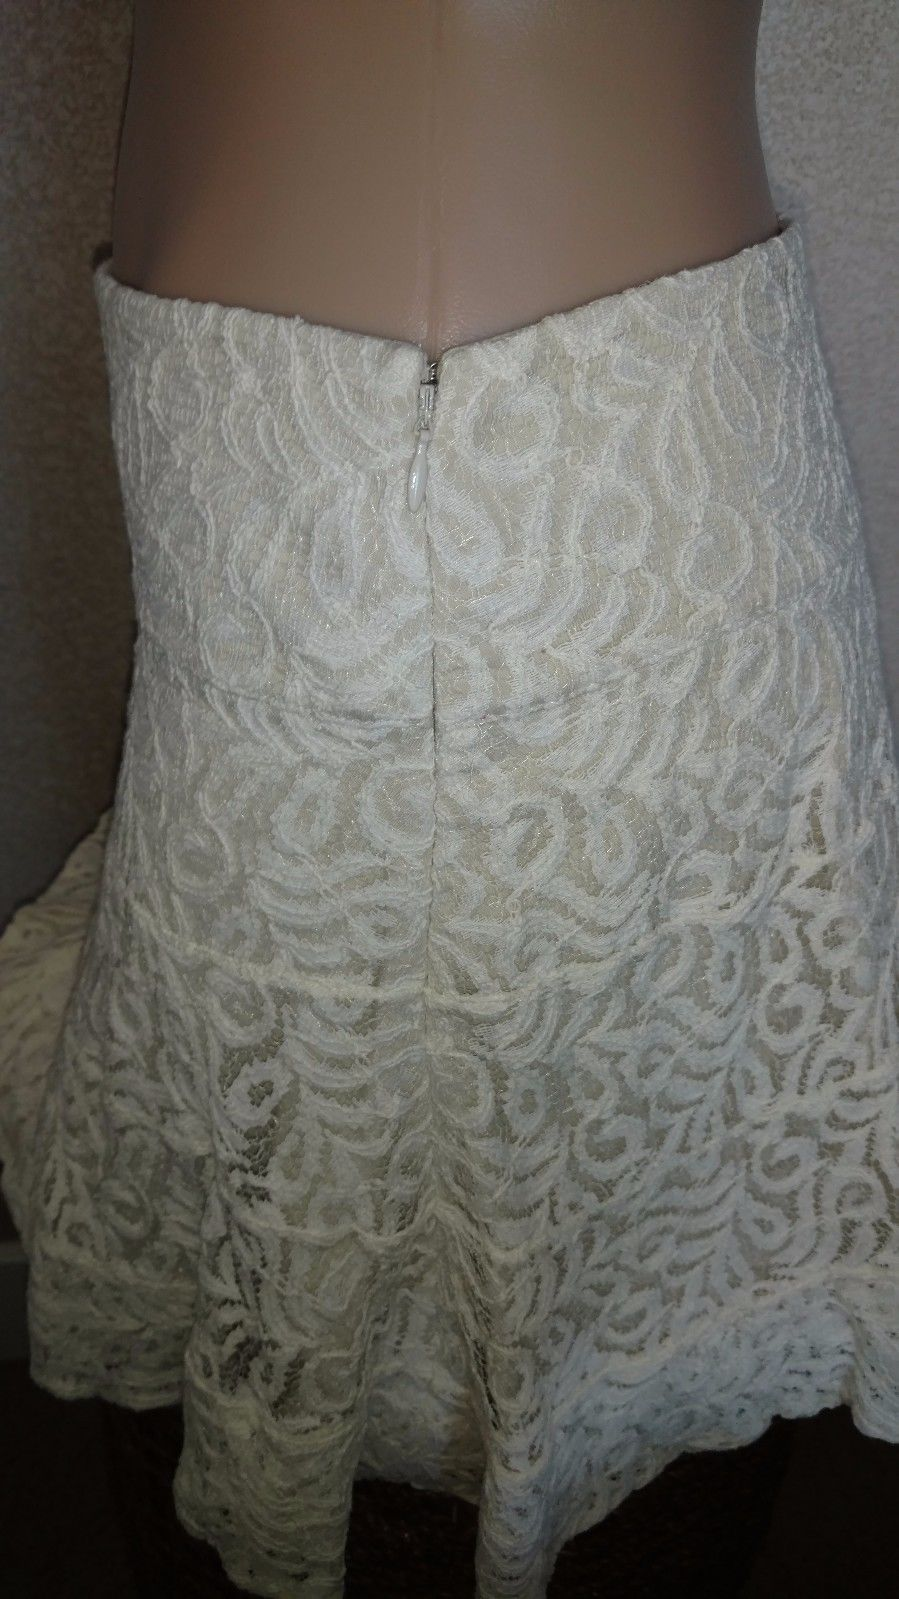 Express Women's Crocheted Lace Fit & Flare Skirt Ivory Size 10 $78